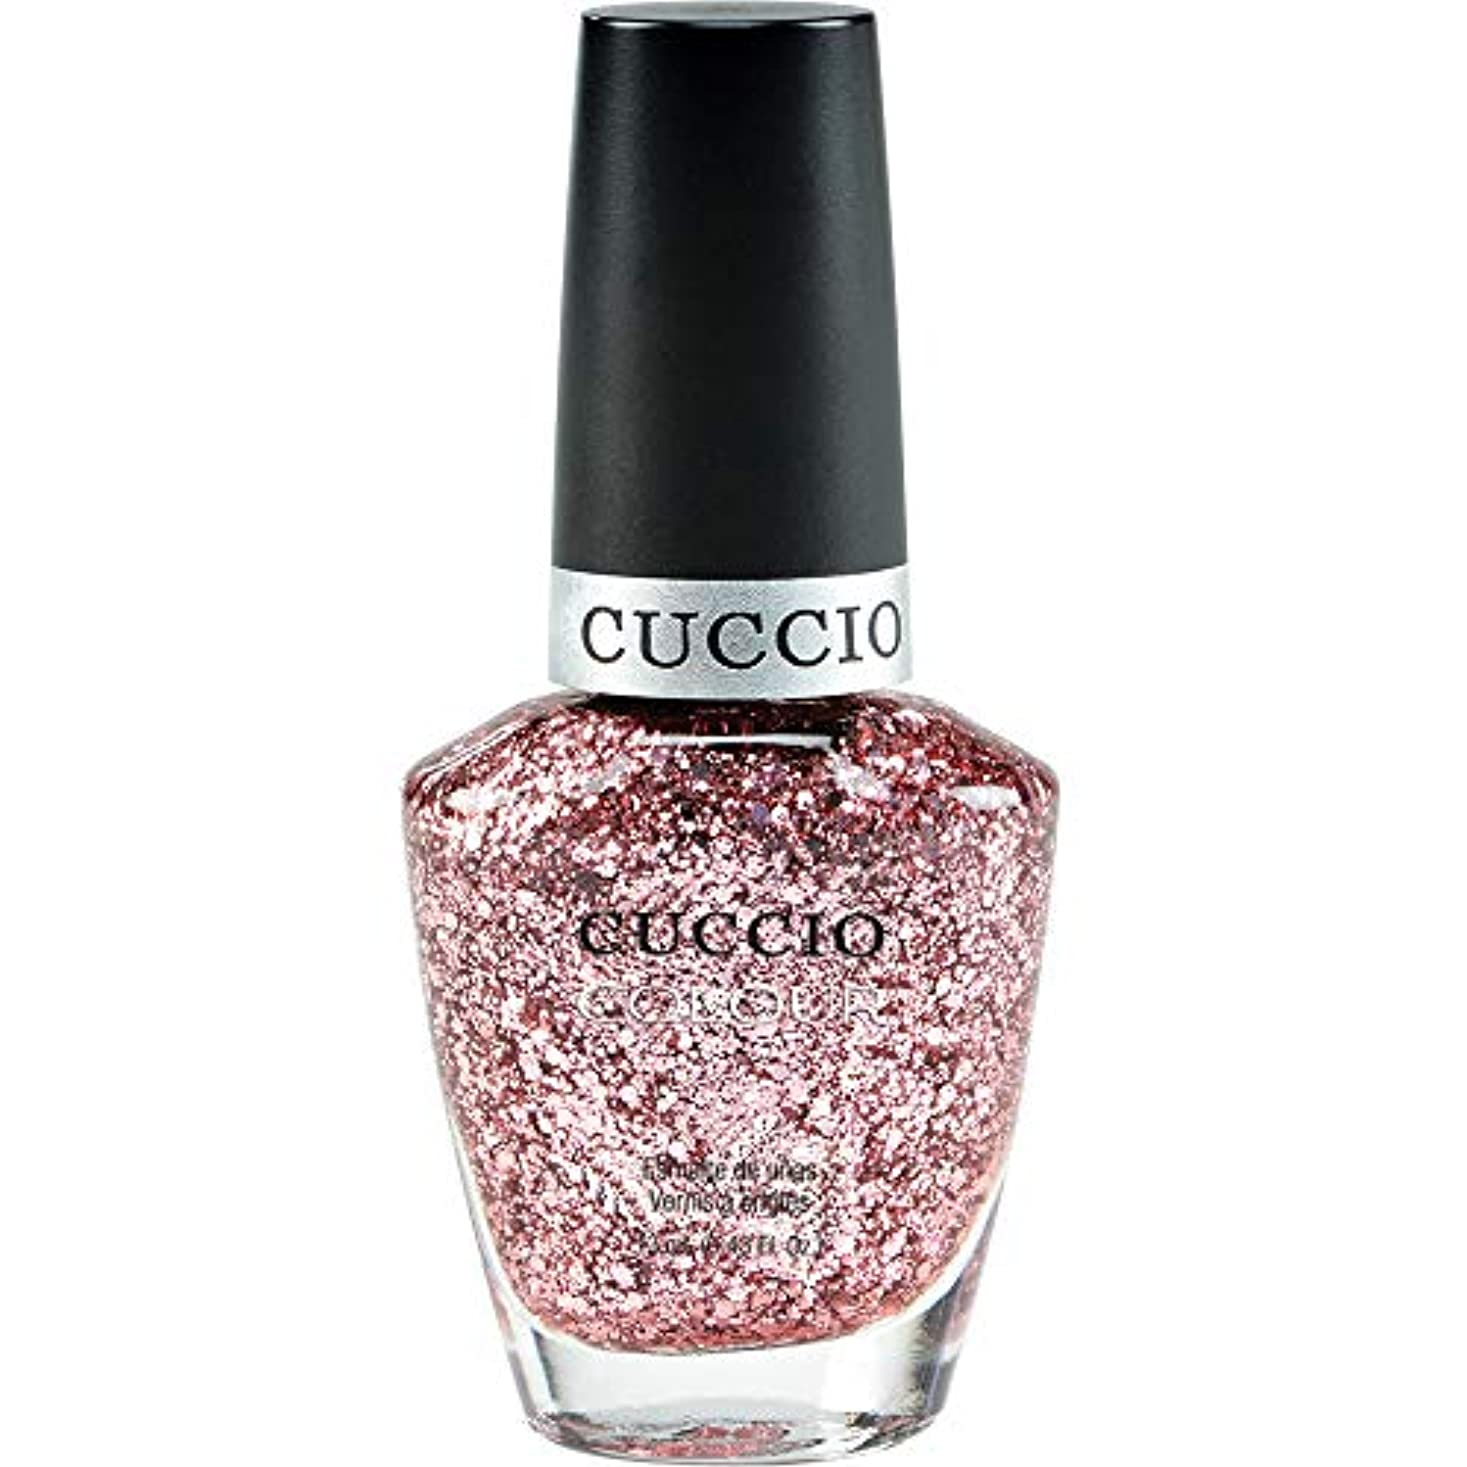 フェリー恐怖ジャーナルCuccio Colour Gloss Lacquer - Fever of Love - 0.43oz / 13ml